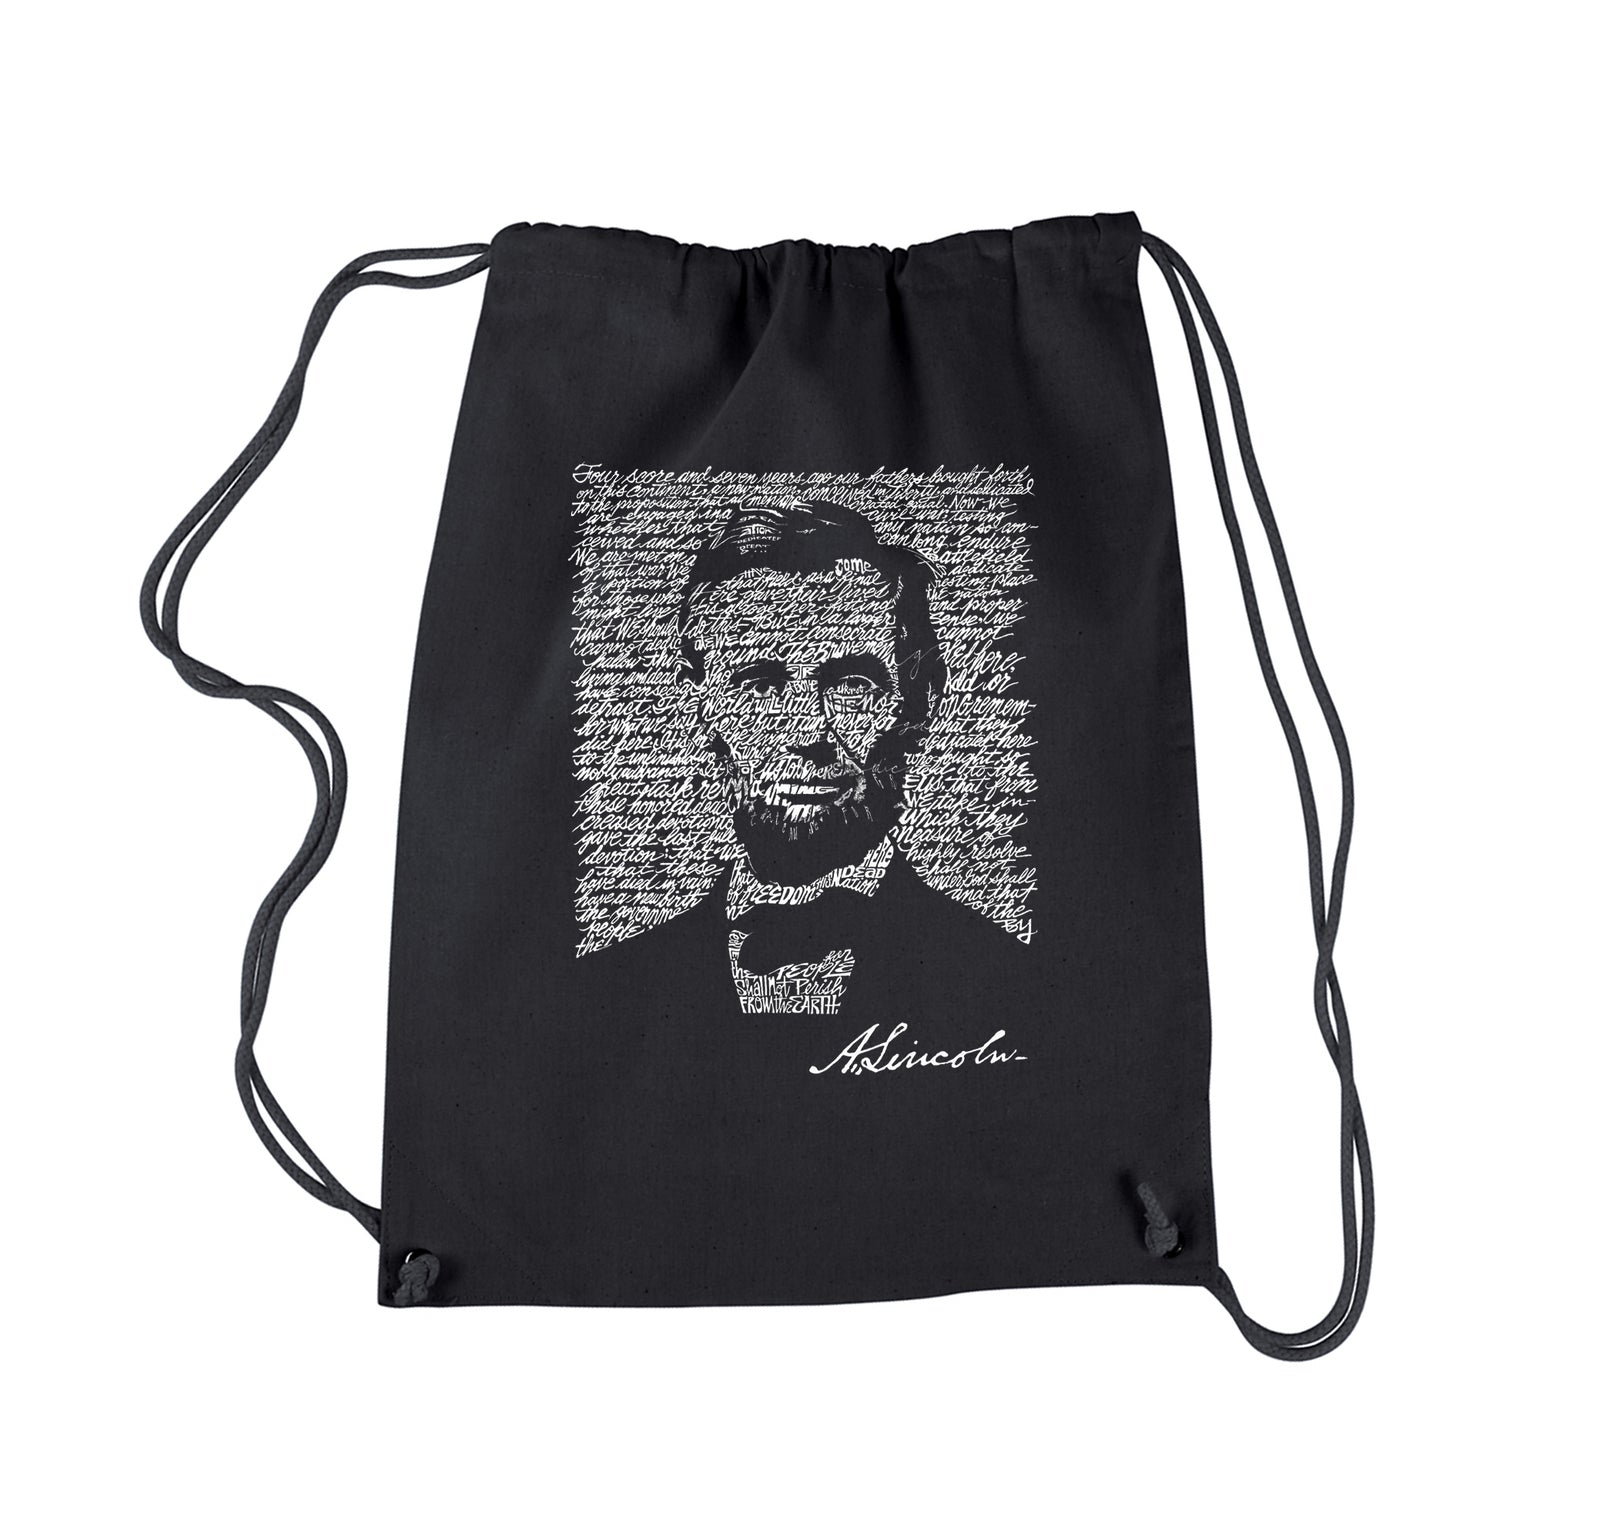 Drawstring Backpack - ABRAHAM LINCOLN - GETTYSBURG ADDRESS